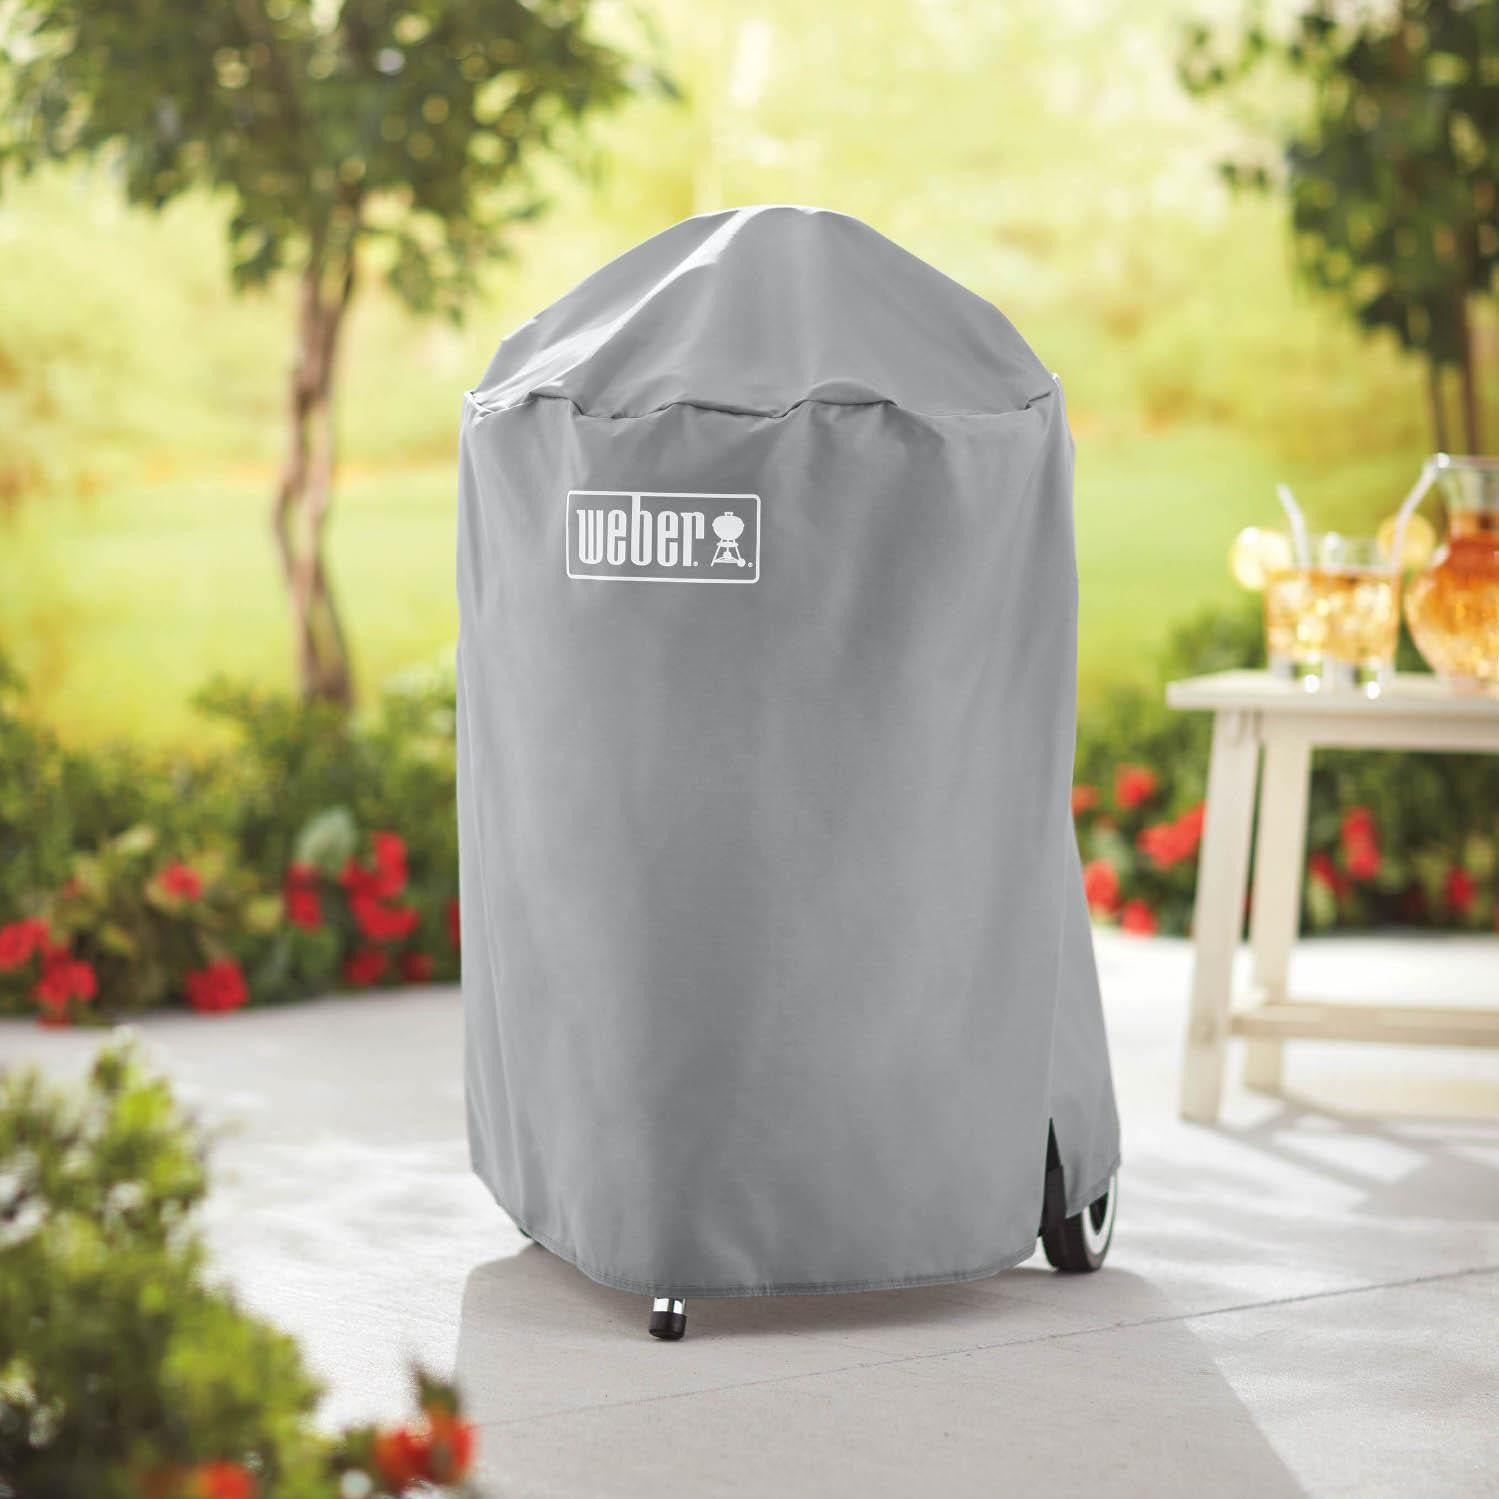 Weber 7175 Charcoal Kettle Grill Cover For Weber 18-Inch Grills